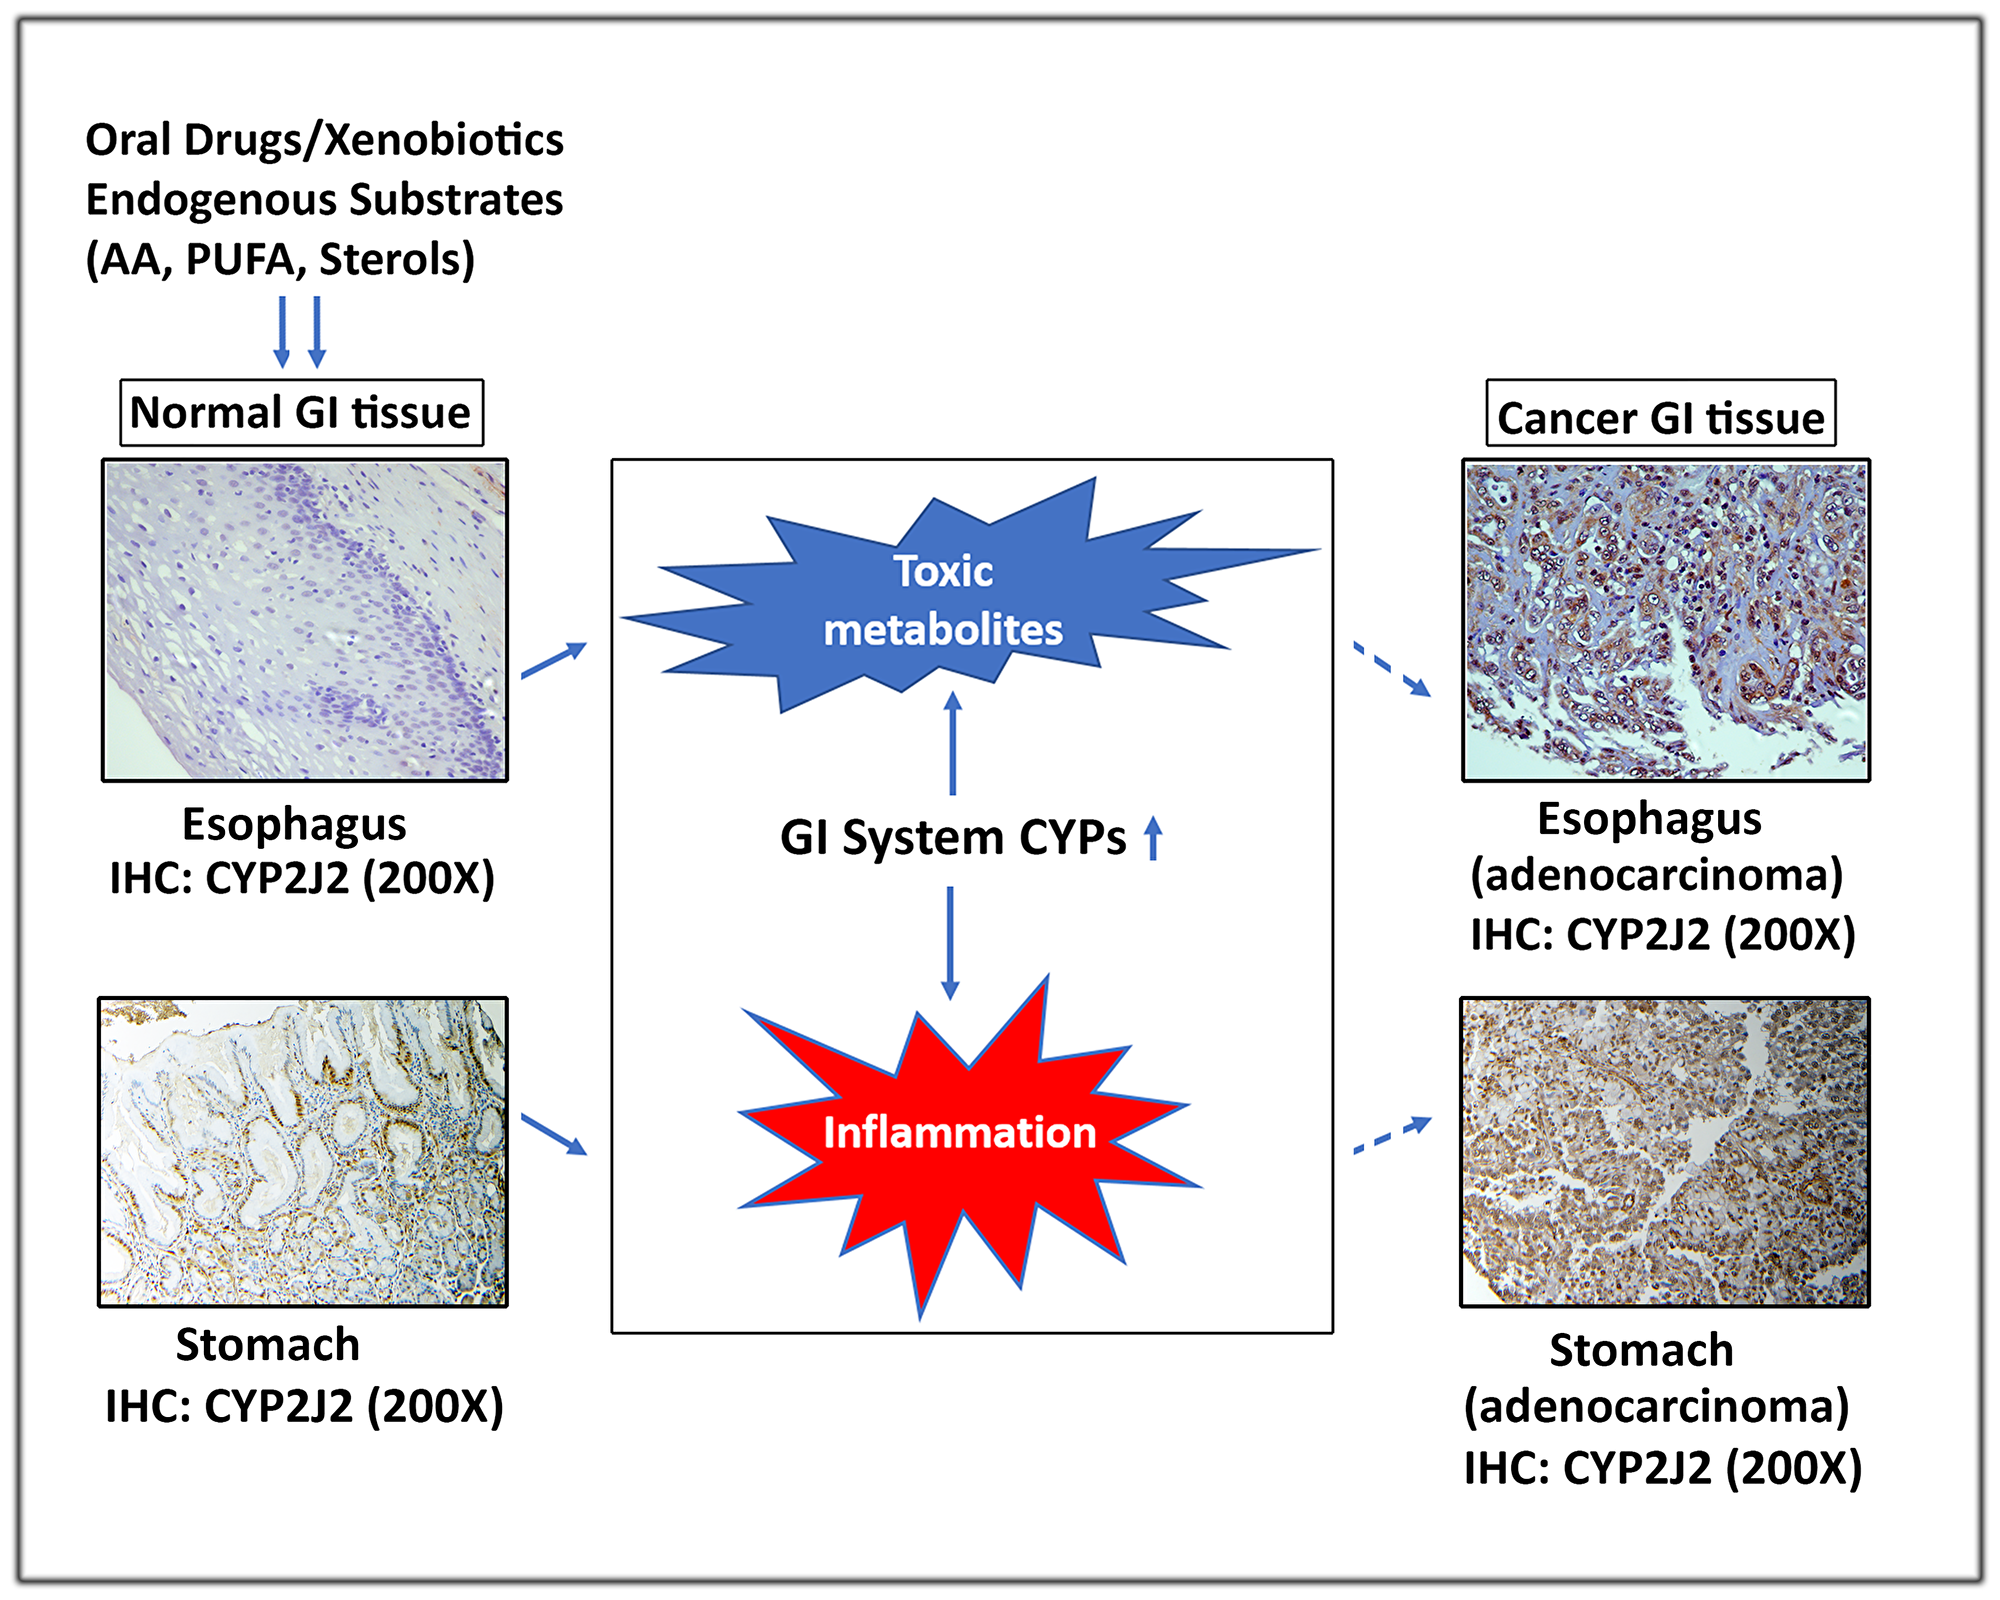 A schematic representation depicting the role of extrahepatic GI system CYPs in carcinogenesis.